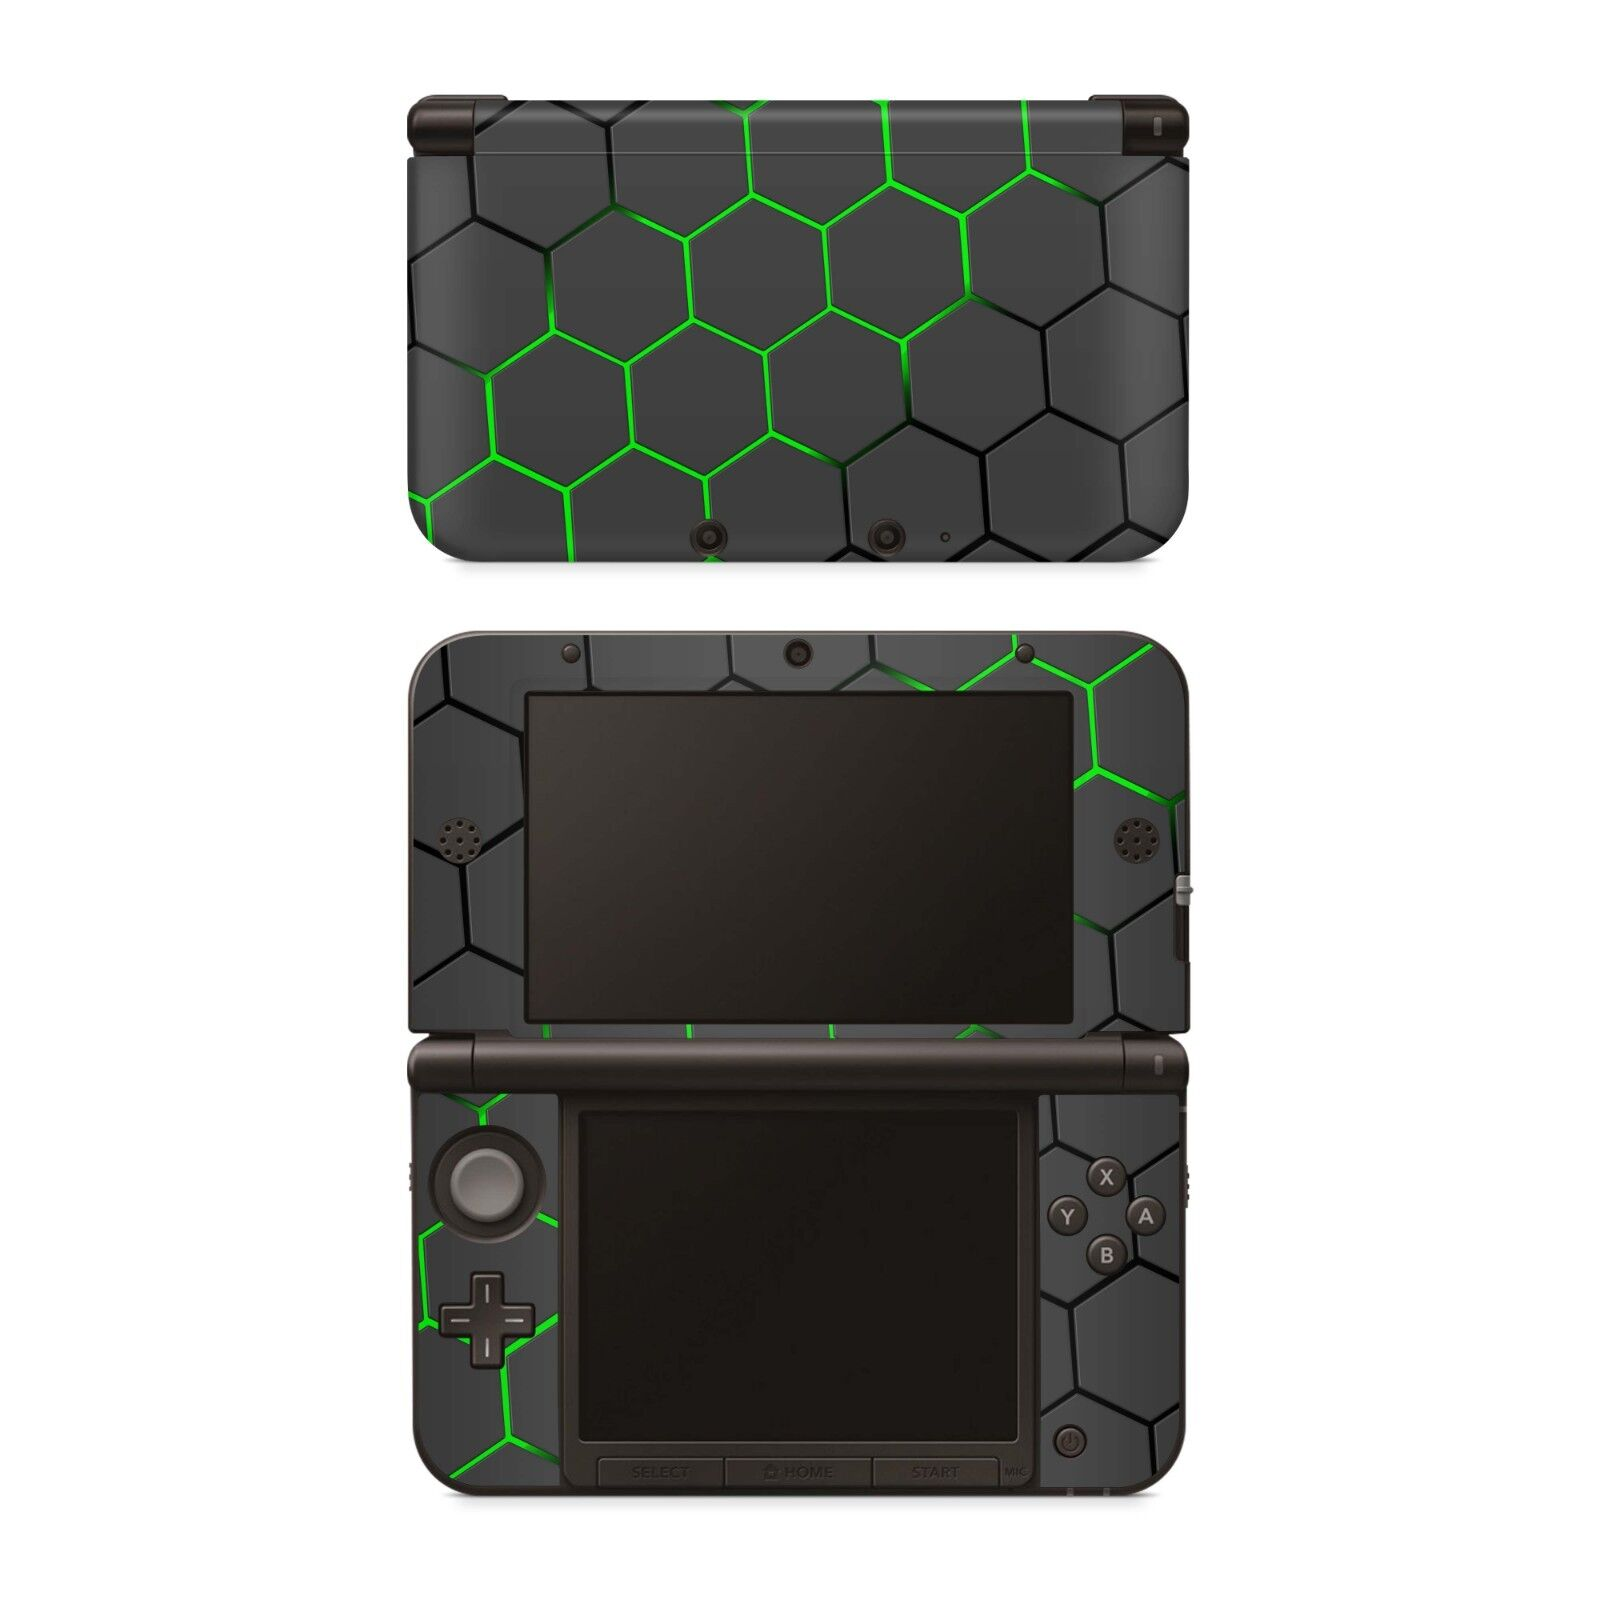 nintendo 3ds skin test vergleich nintendo 3ds skin. Black Bedroom Furniture Sets. Home Design Ideas